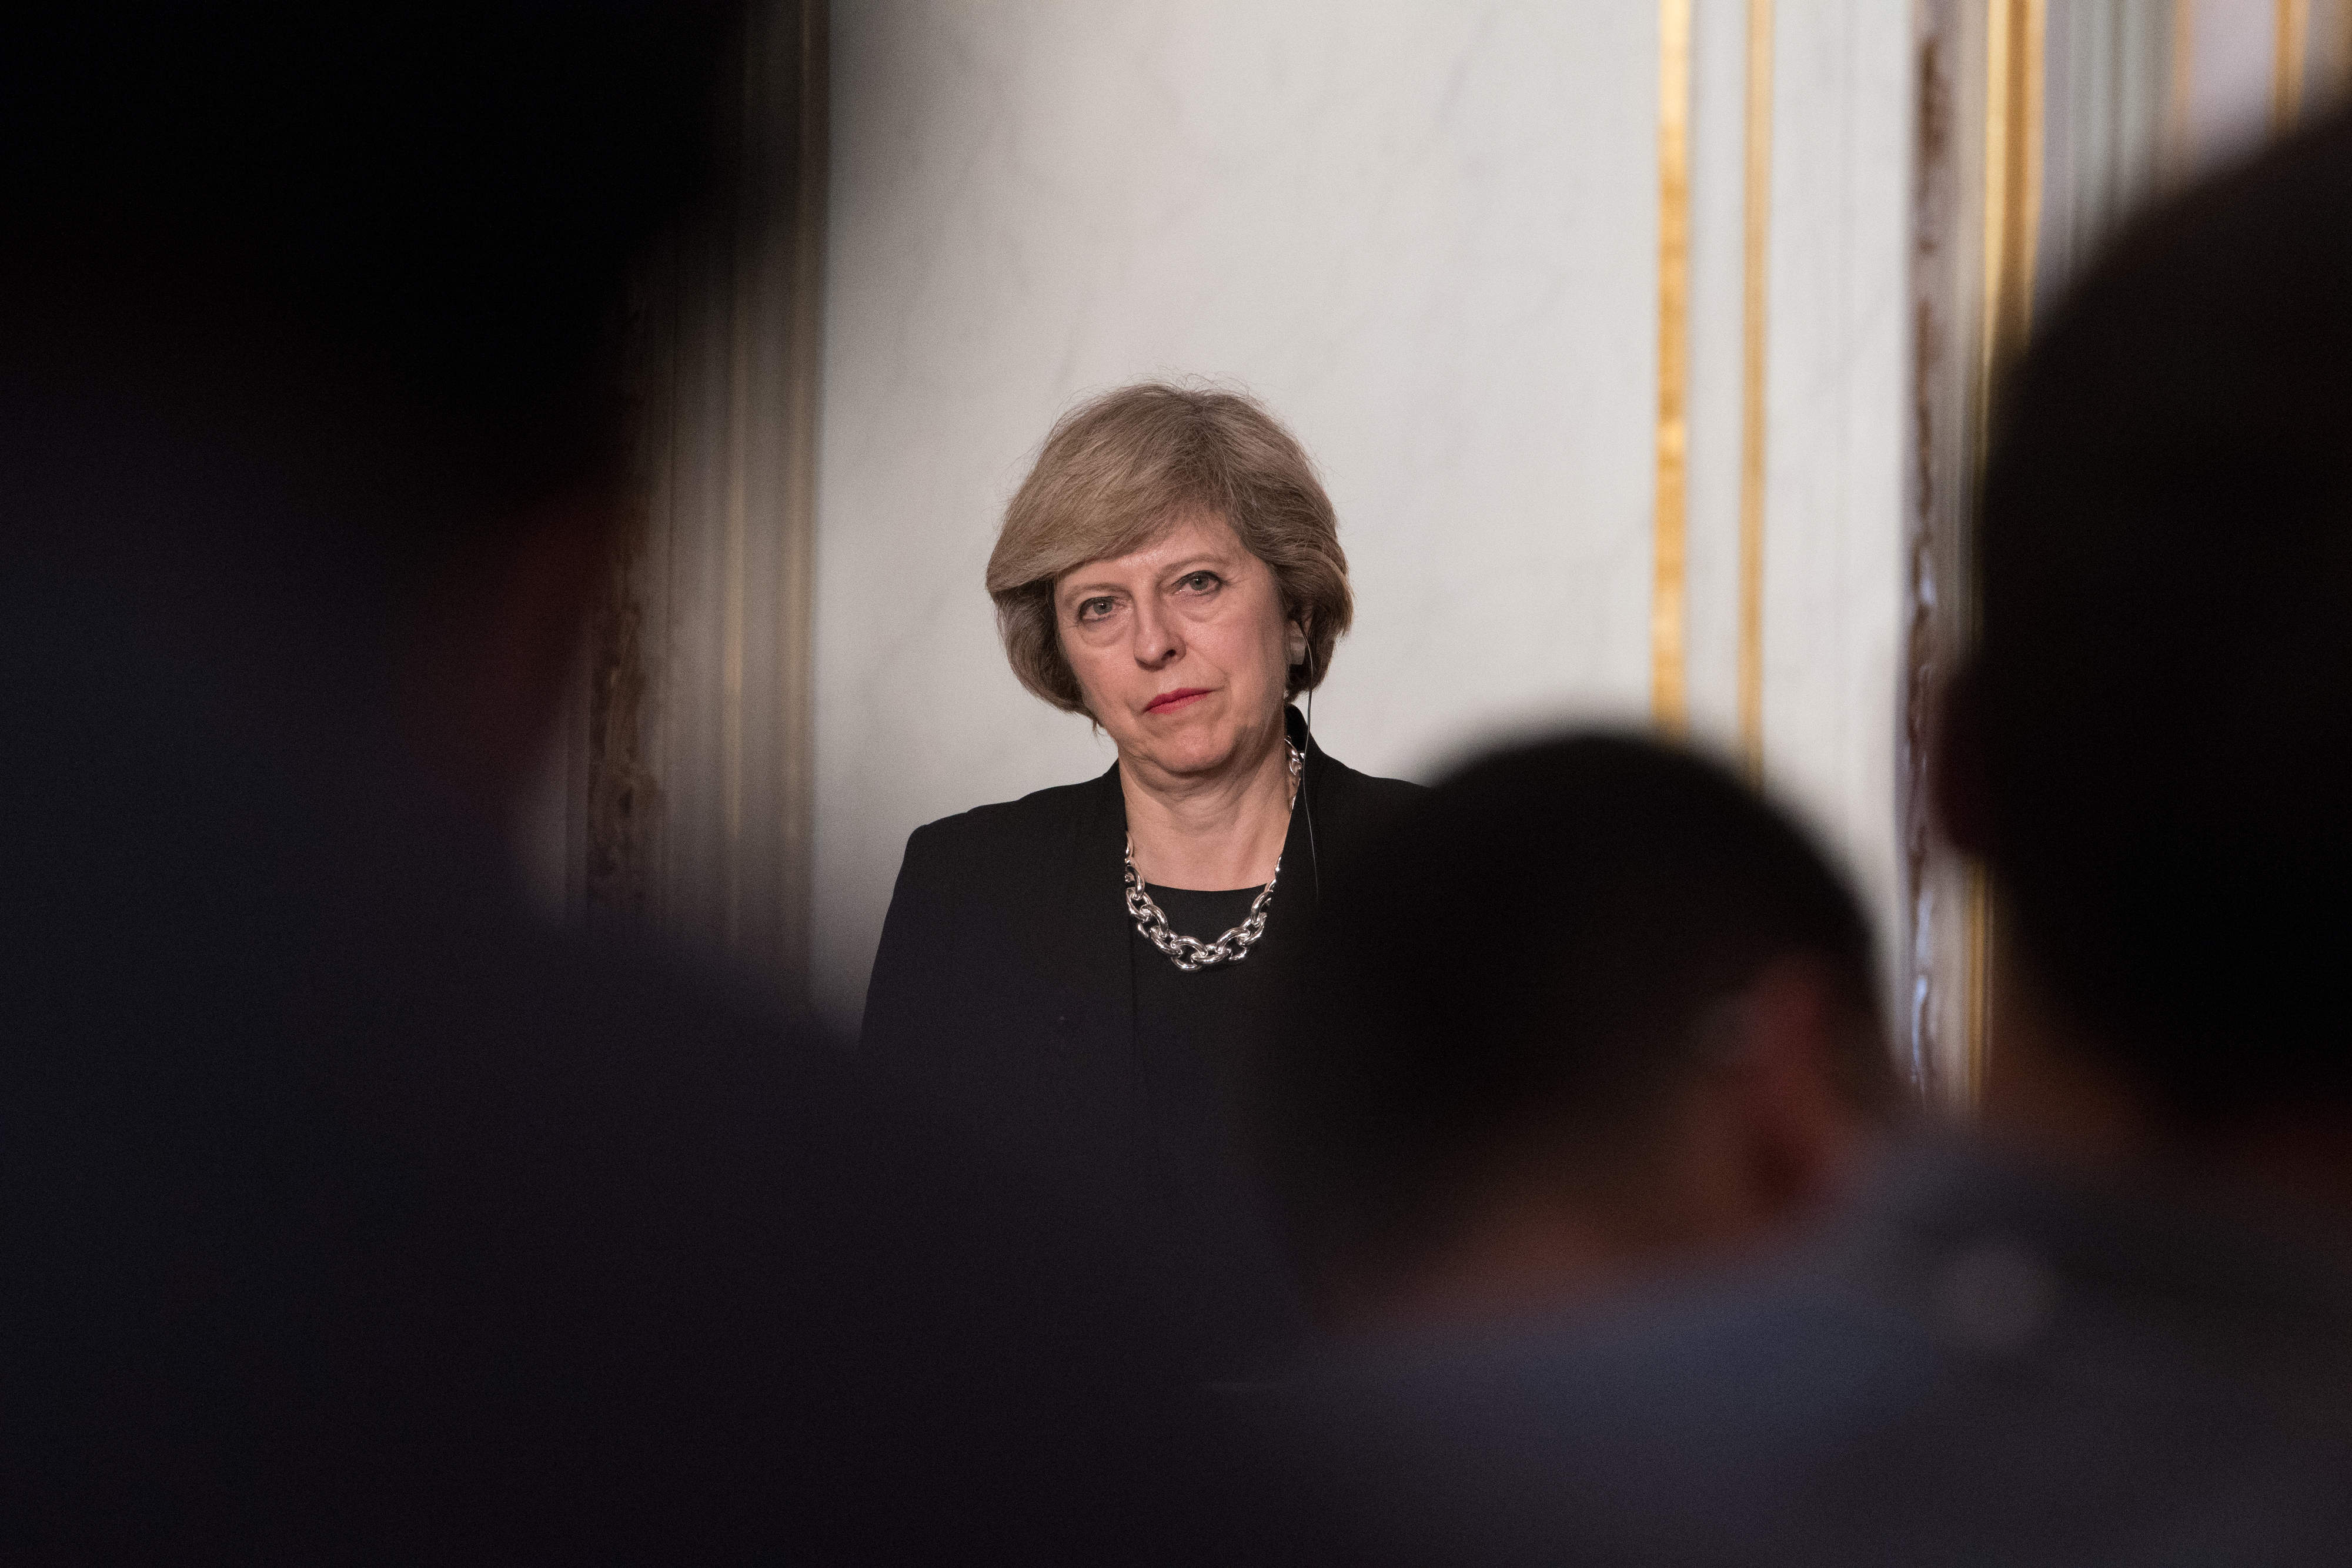 Here's the reaction to Theresa May's Brexit speech